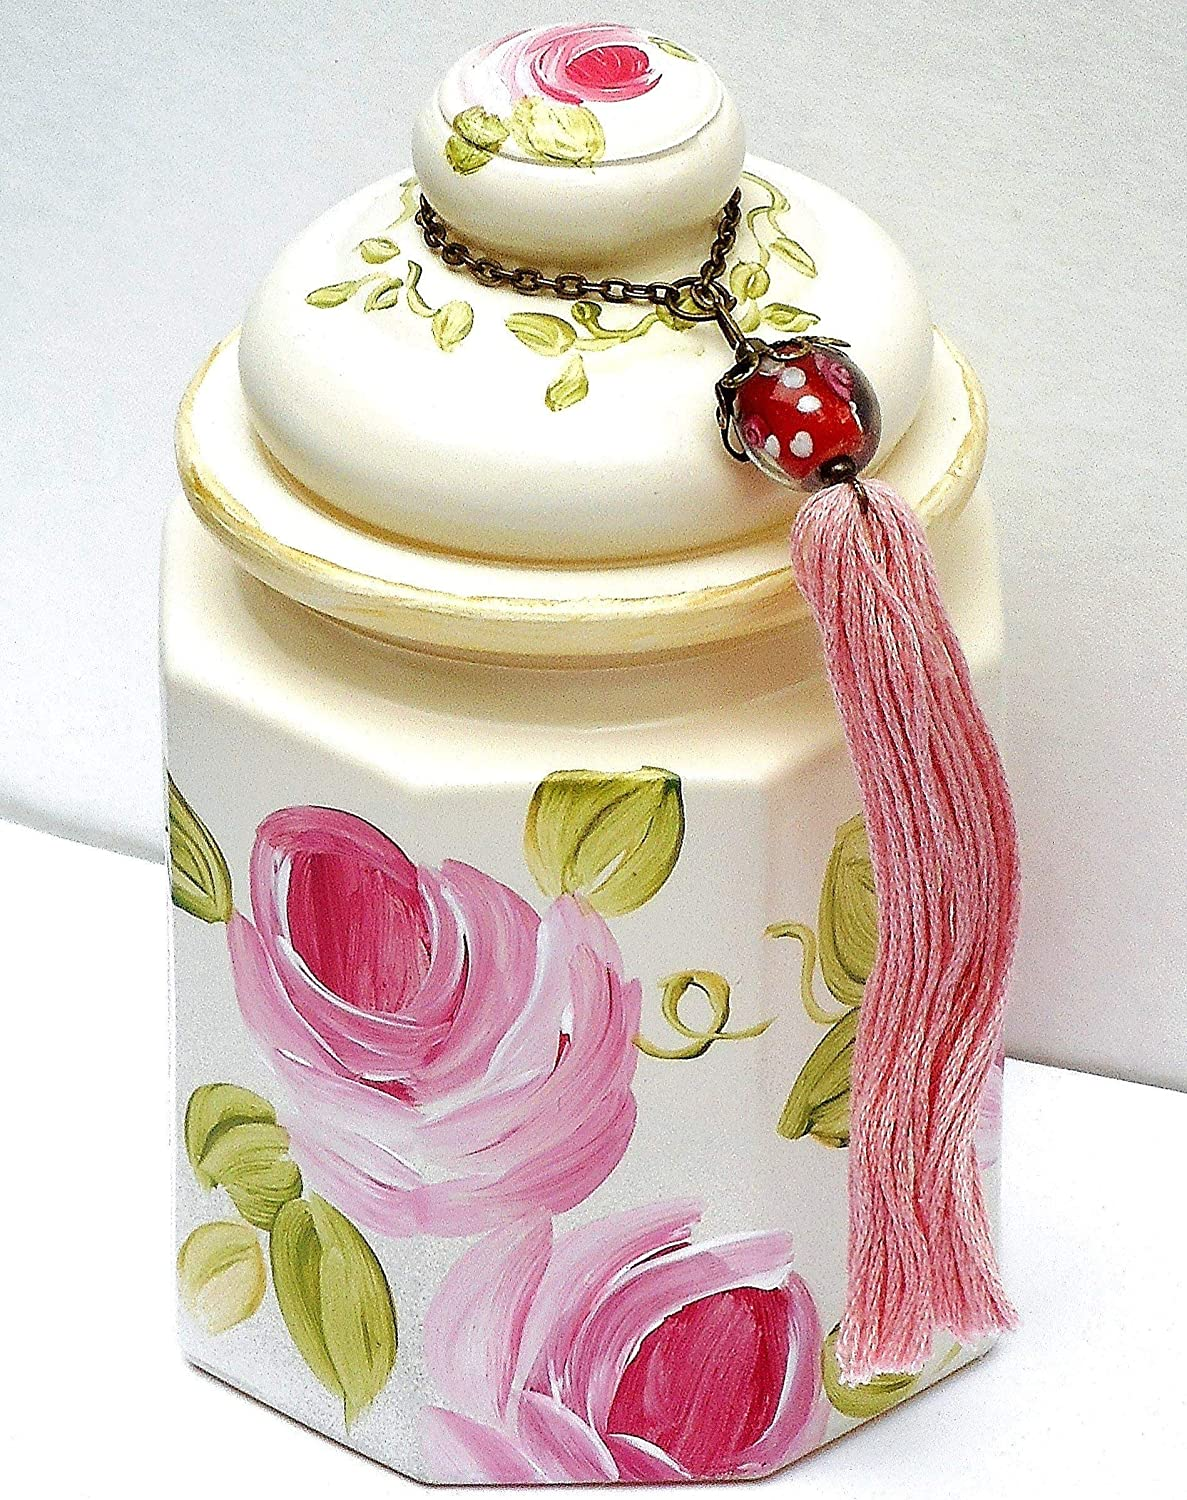 Amazon Com Romantic Shabby Chic Bathroom Accessories Large Ivory Decorative Lidded Glass Jar With Hand Painted Pink Roses And Tassel Handmade